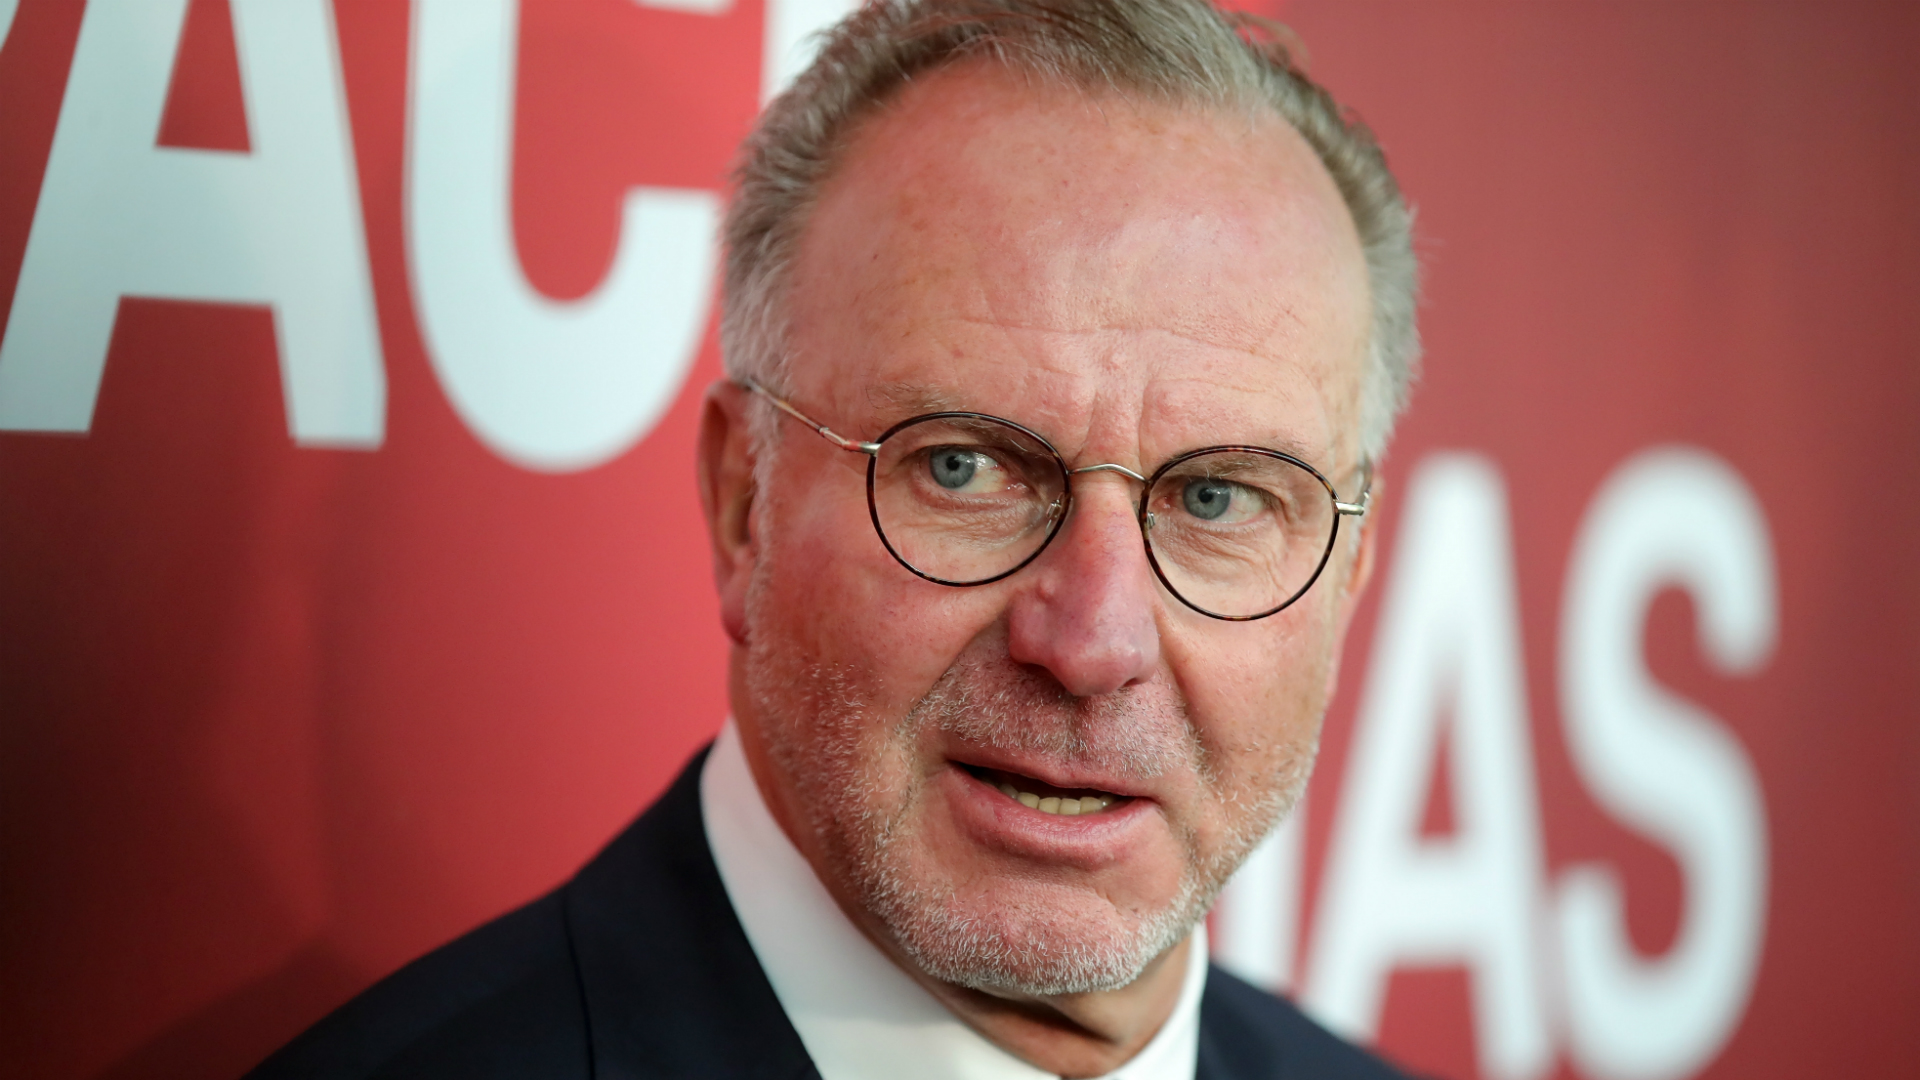 Bayern CEO Rummenigge 'cautiously optimistic' about fans returning in 2021